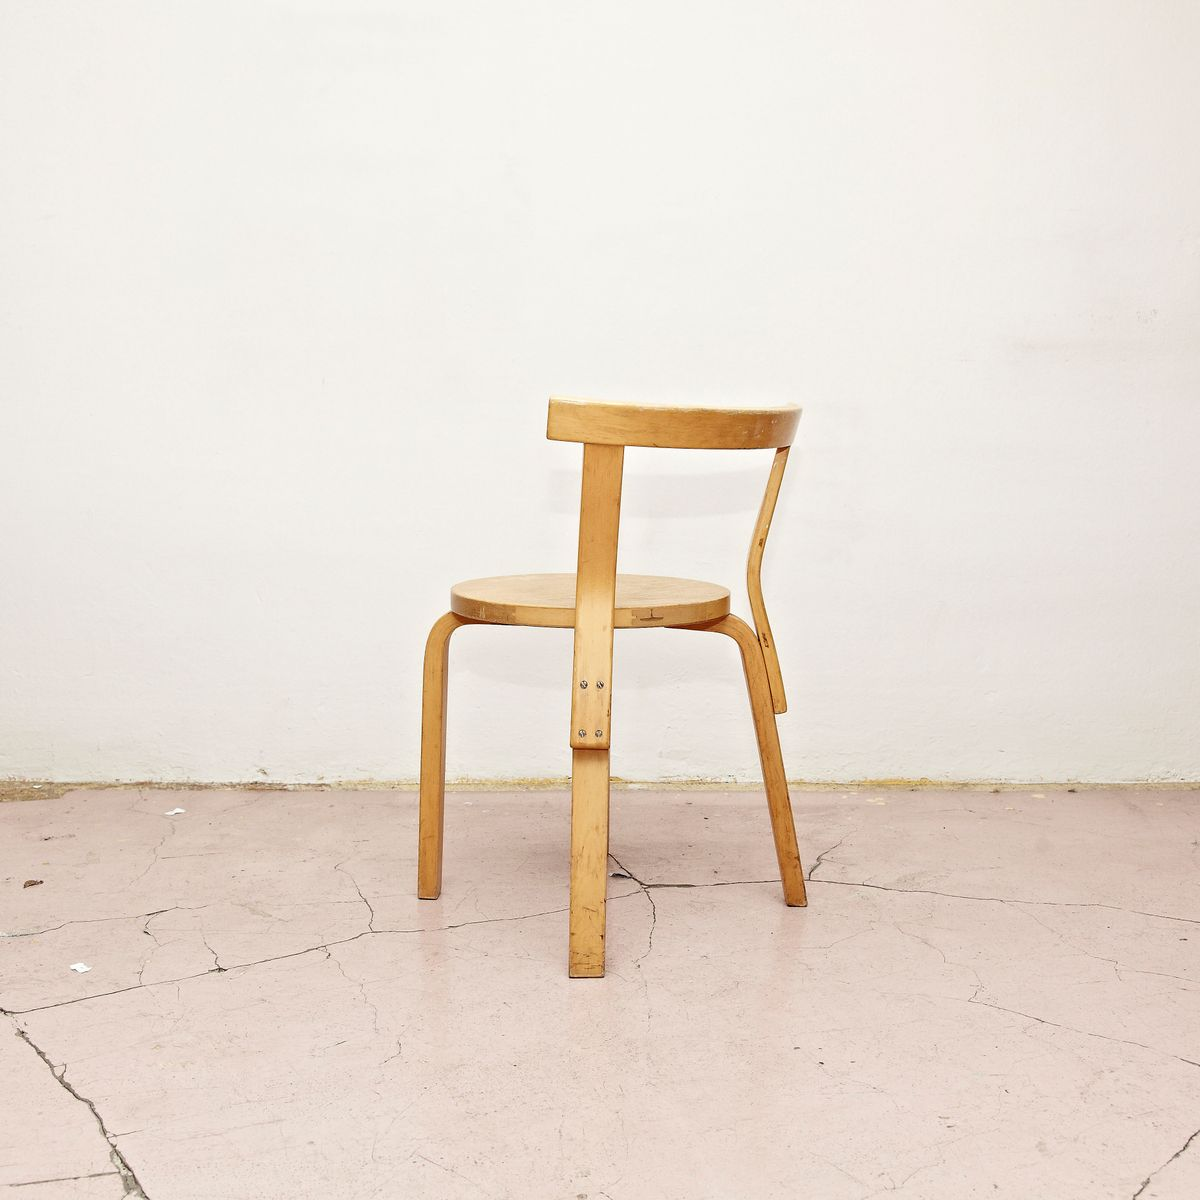 Bentwood chair by alvar aalto for artek 1960s for sale at pamono